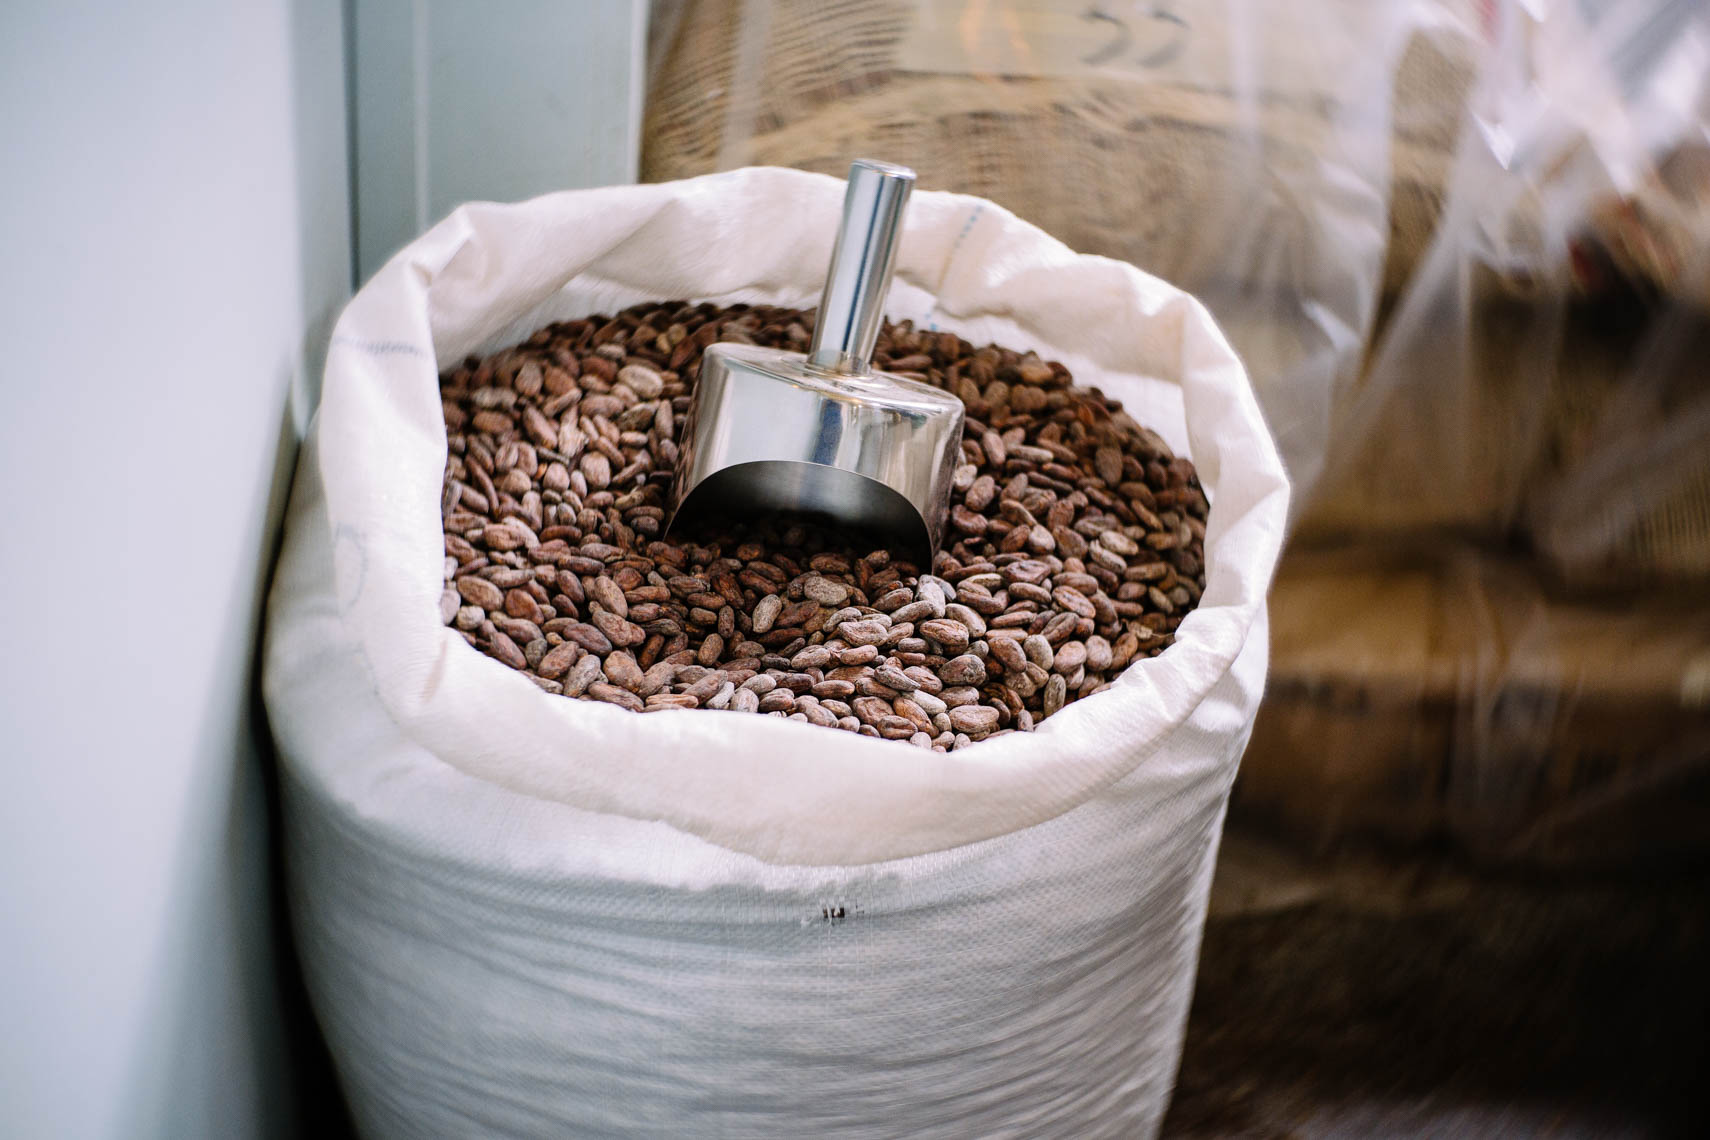 Scoop and cocoa beans.